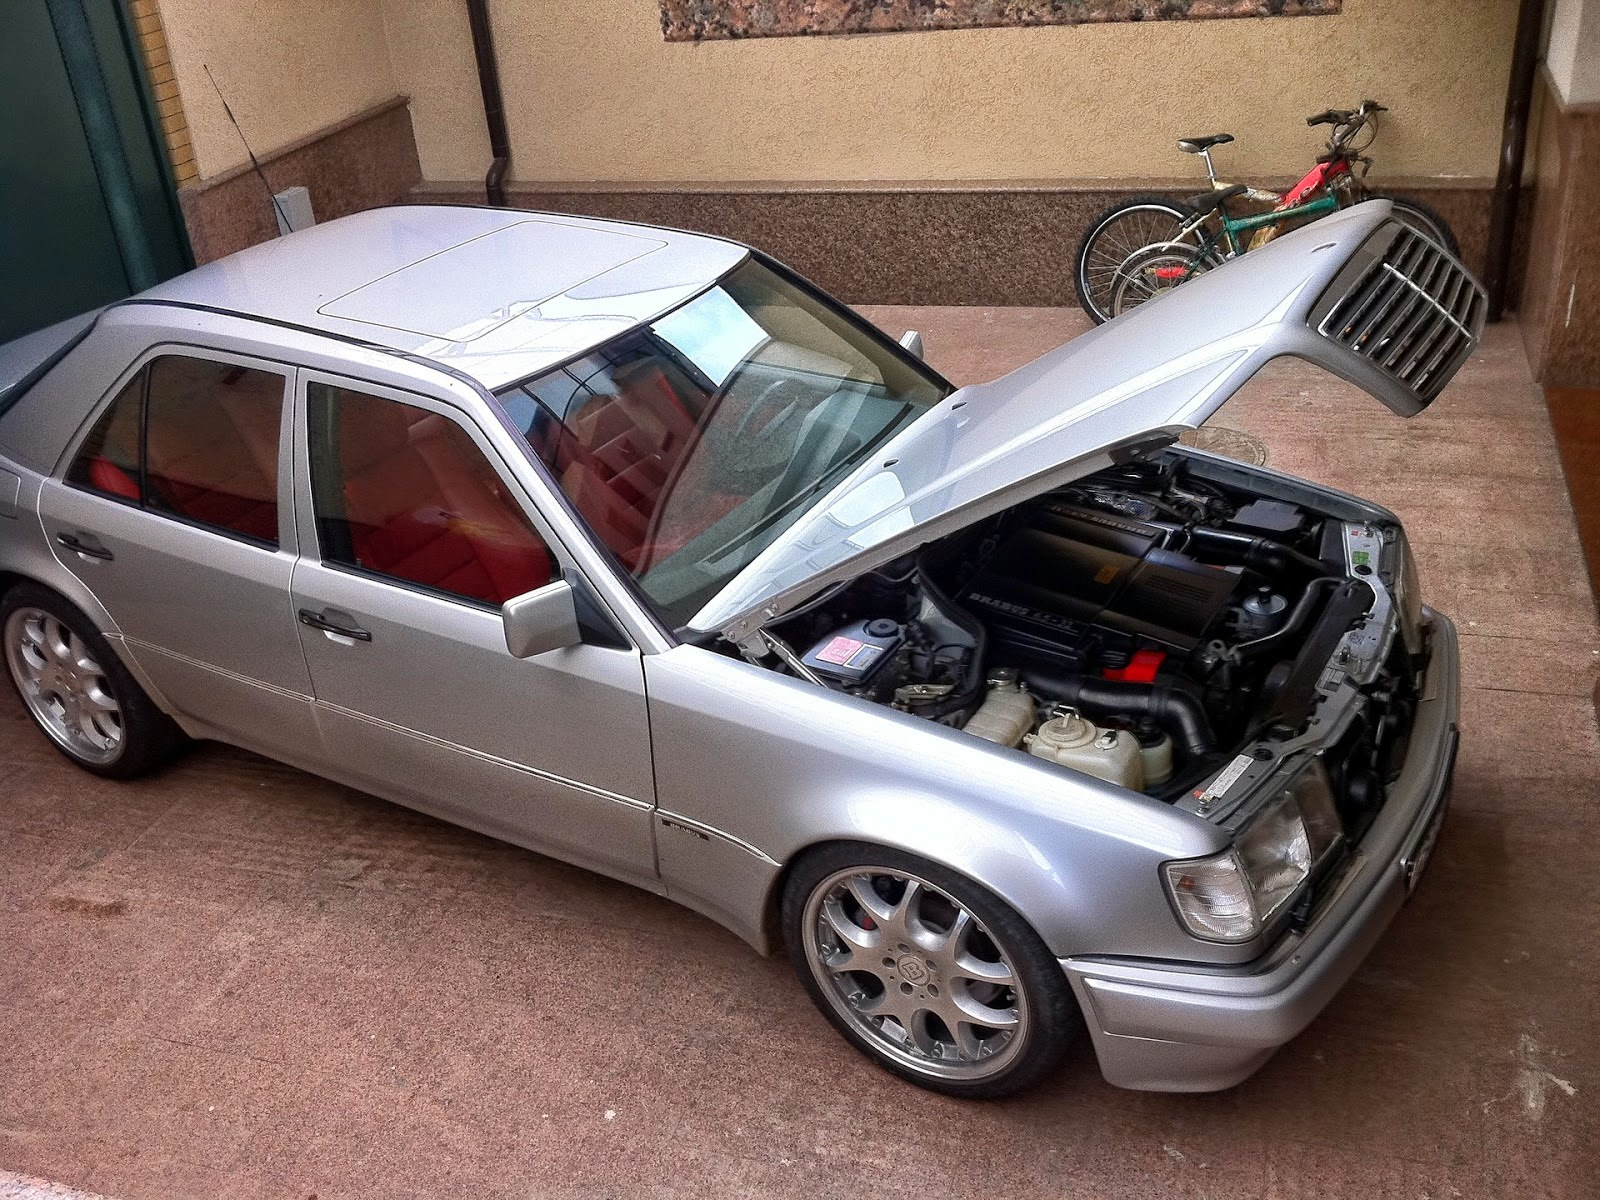 W124 brabus e65 based on mercedes benz e500 benztuning for Mercedes benz w124 tuning